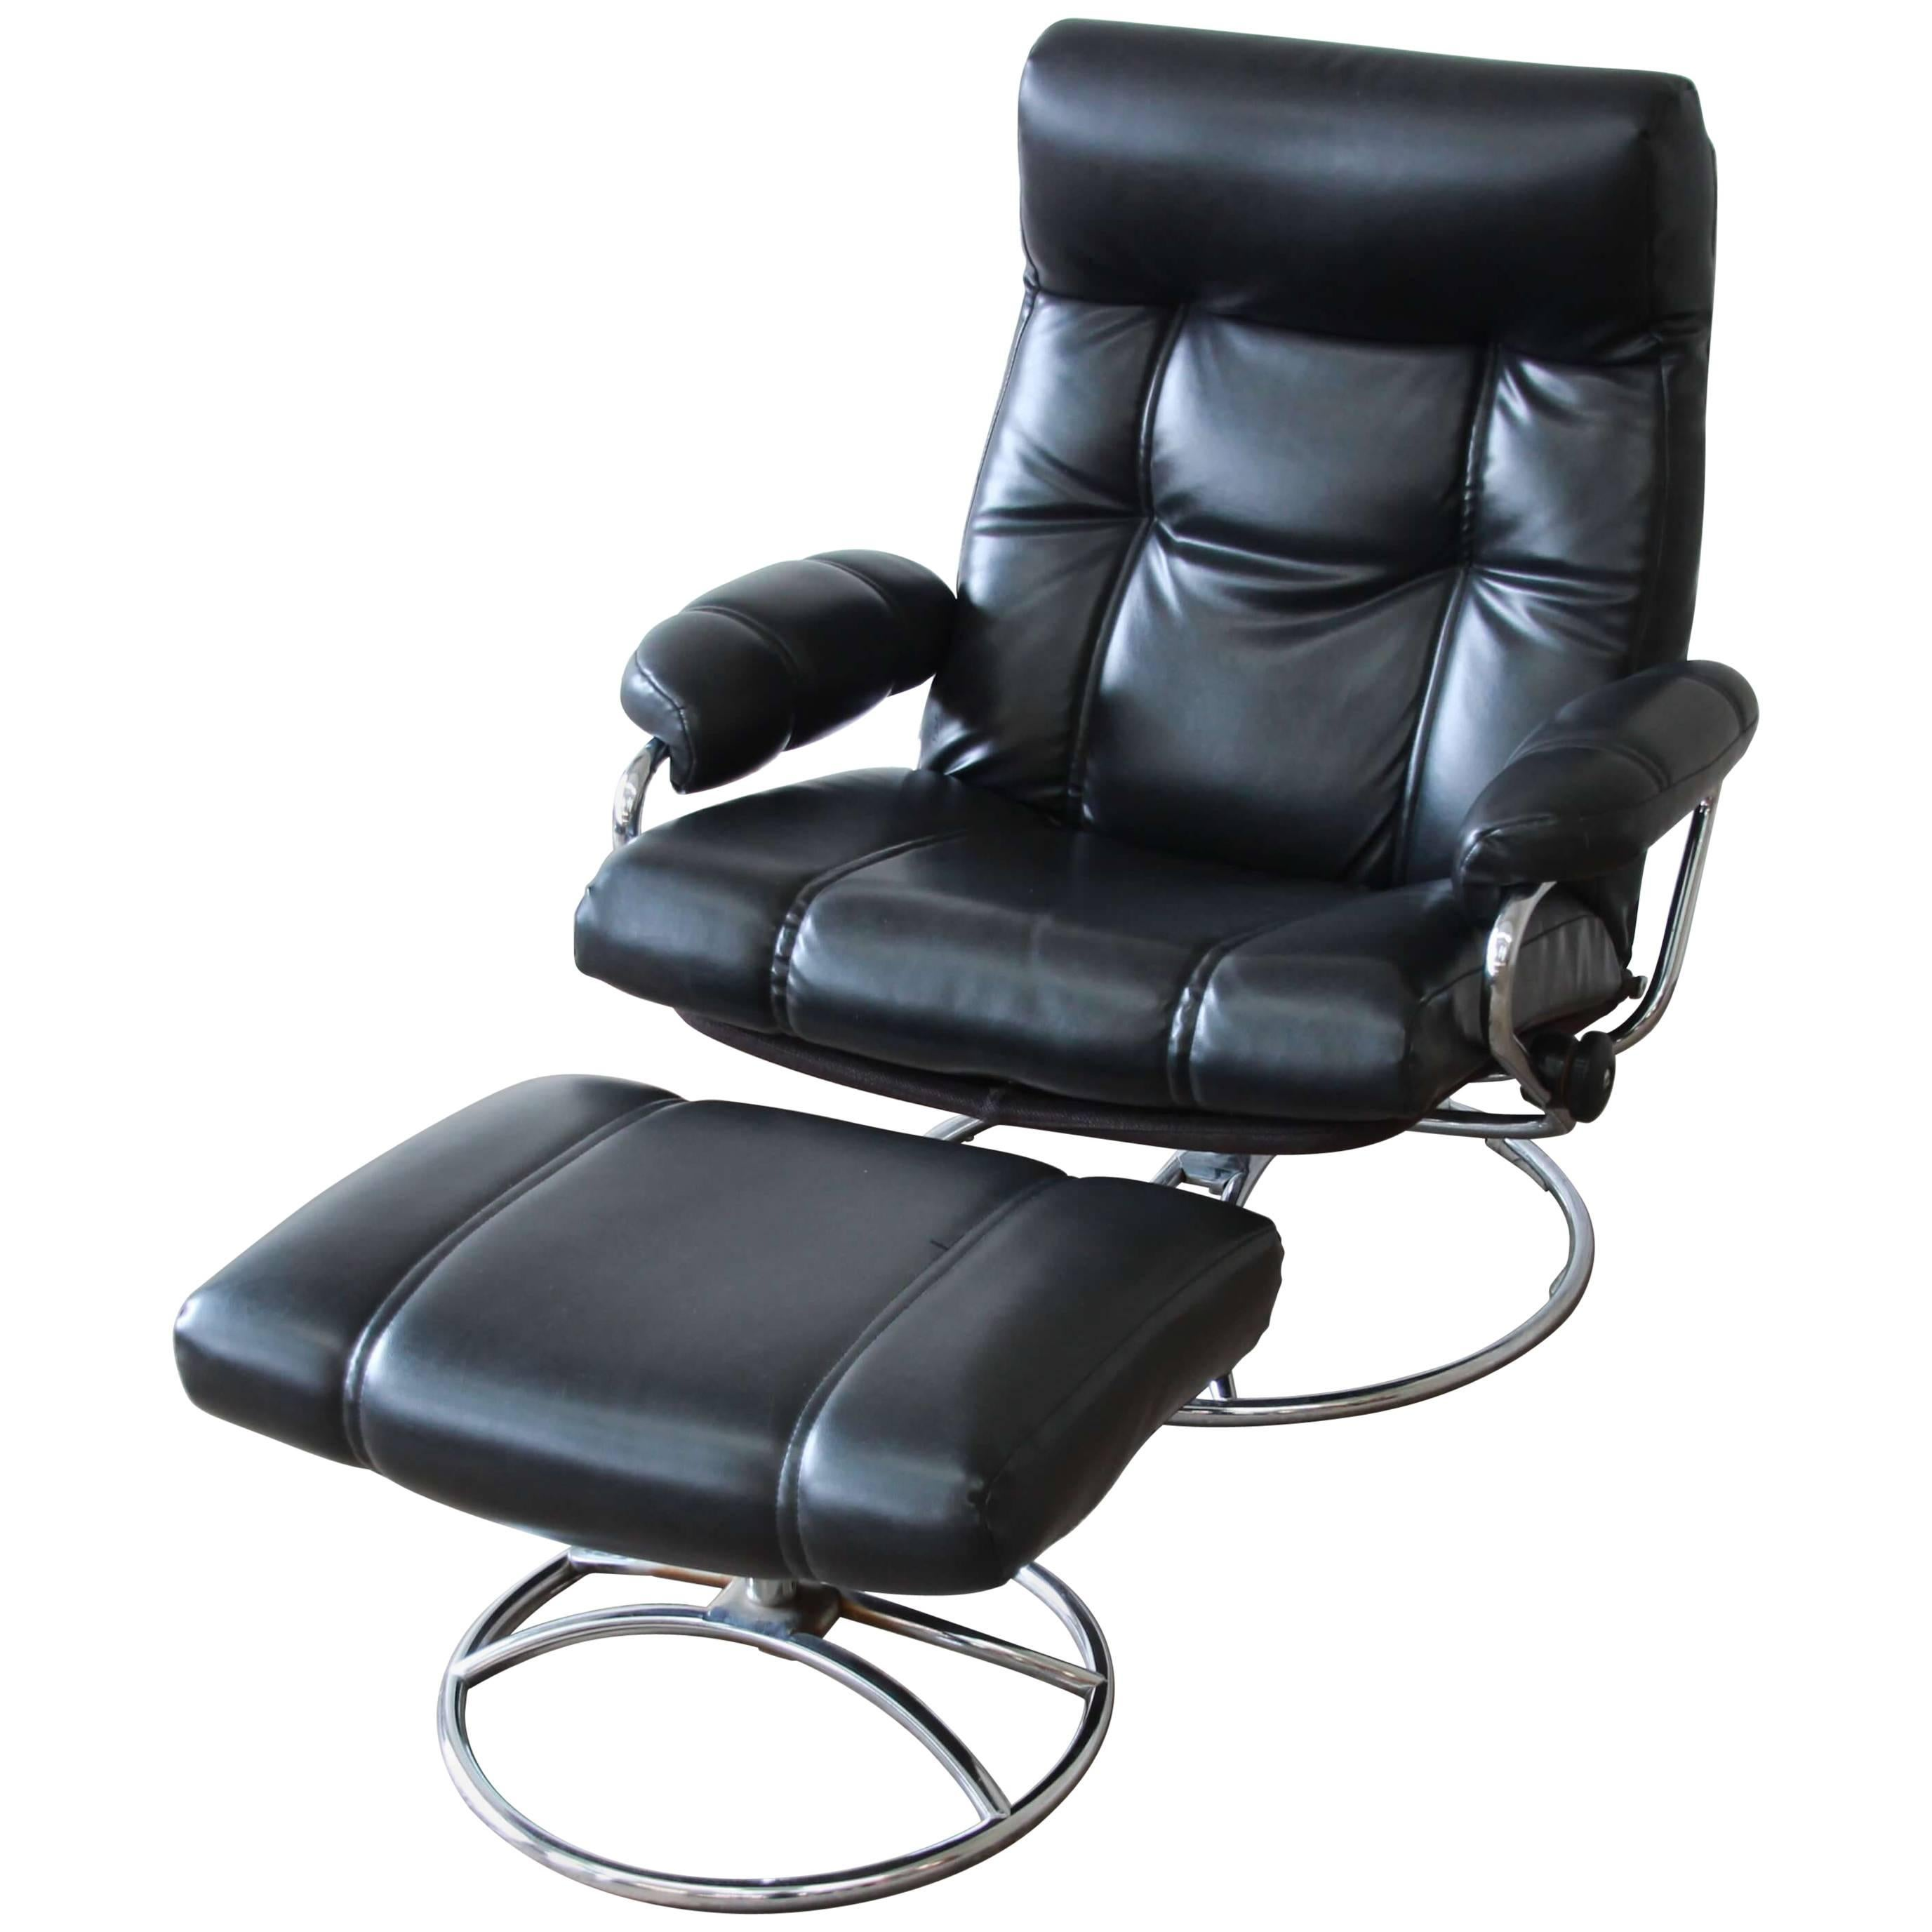 stressless chair sale tall desk vintage black ekornes and ottoman at 1stdibs for